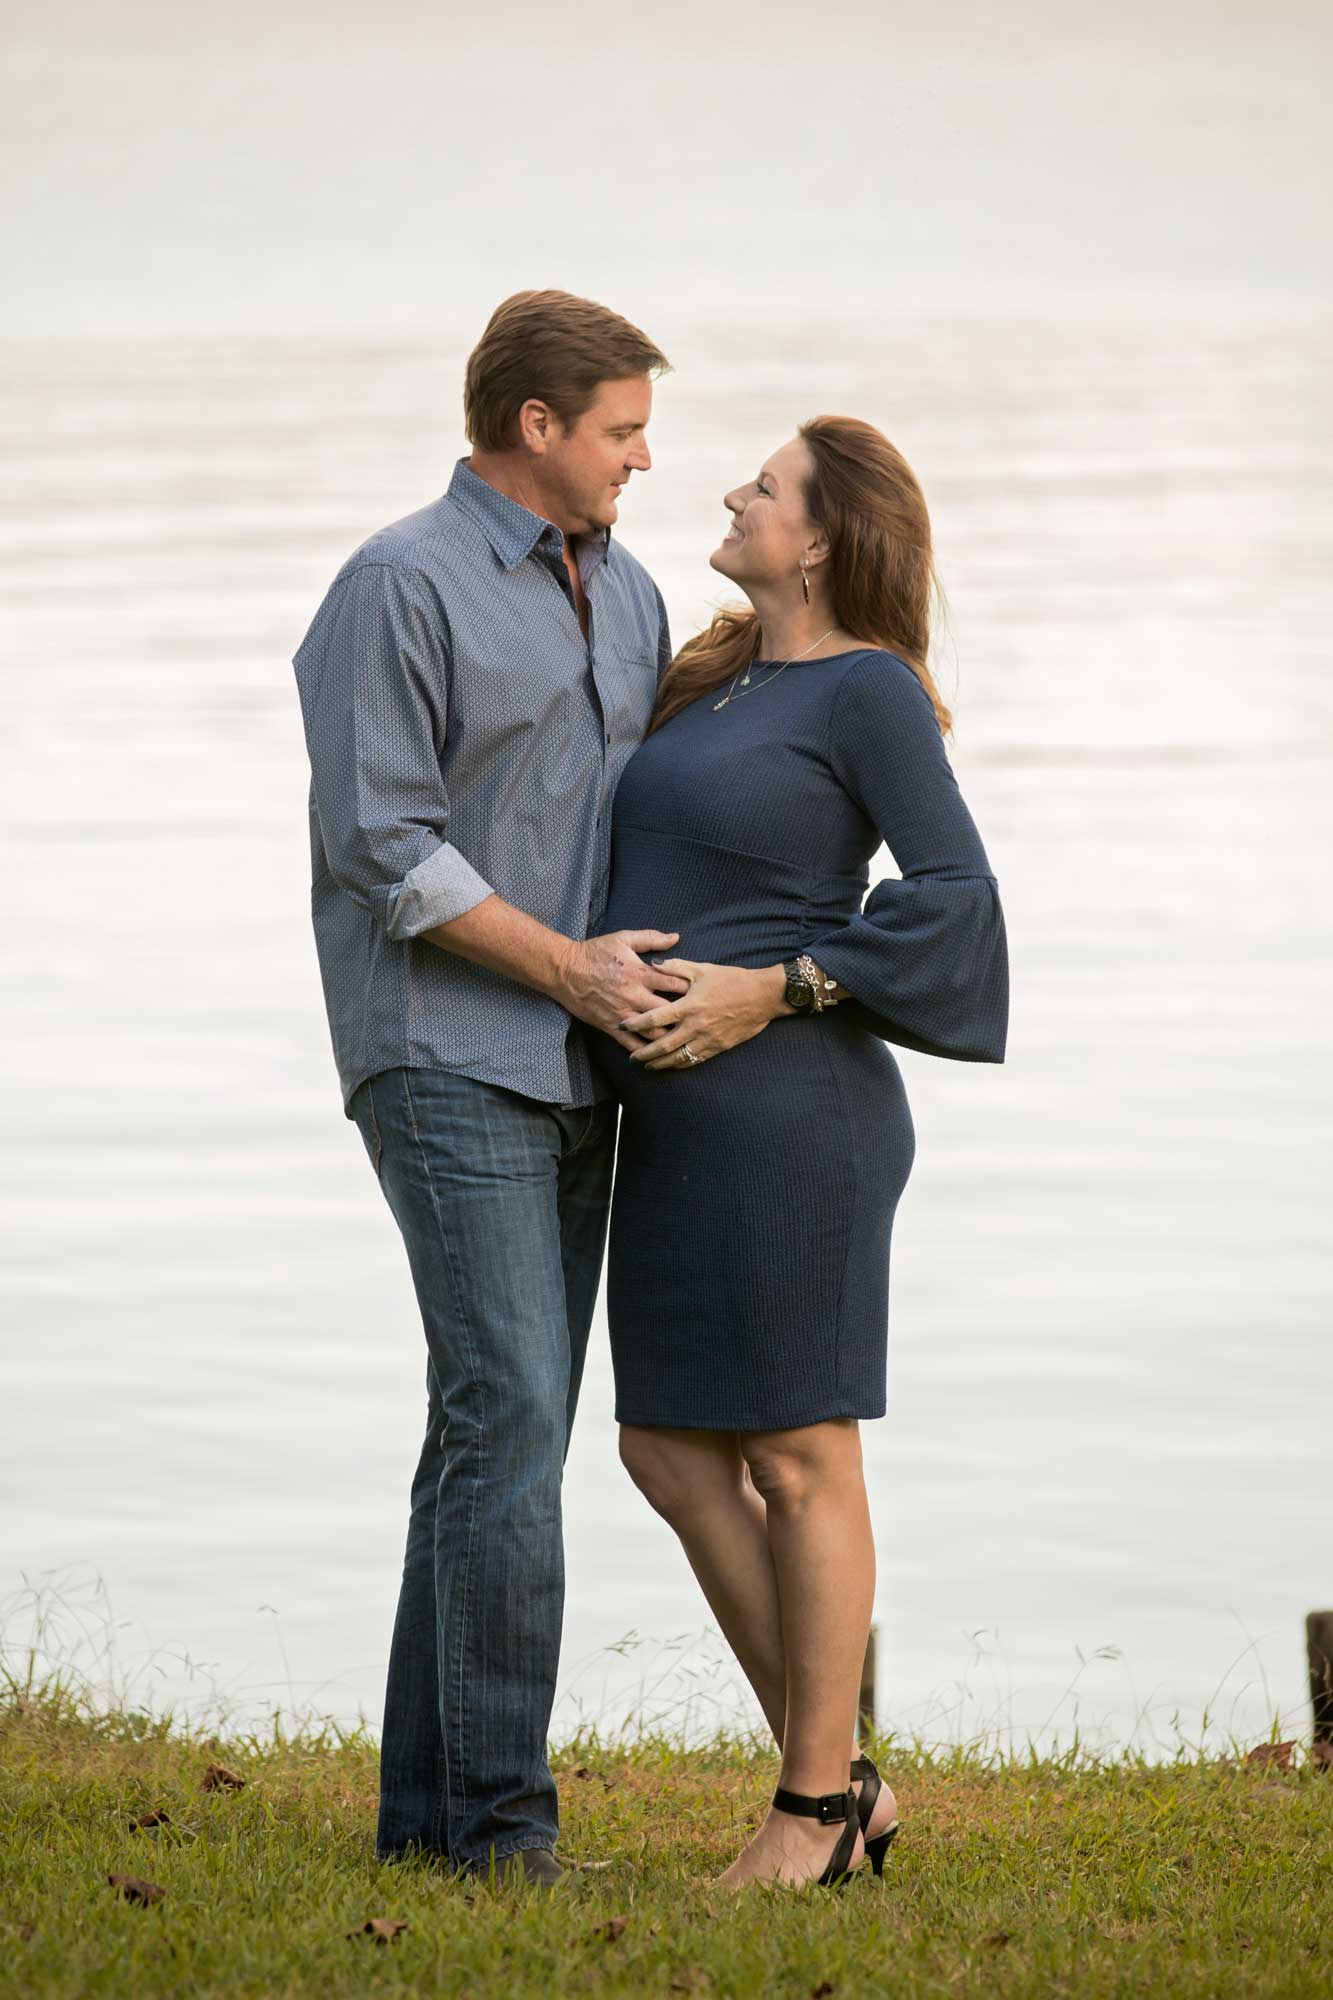 knoxville-maternity-photographer-the-cove-concorn-park-lake.jpg